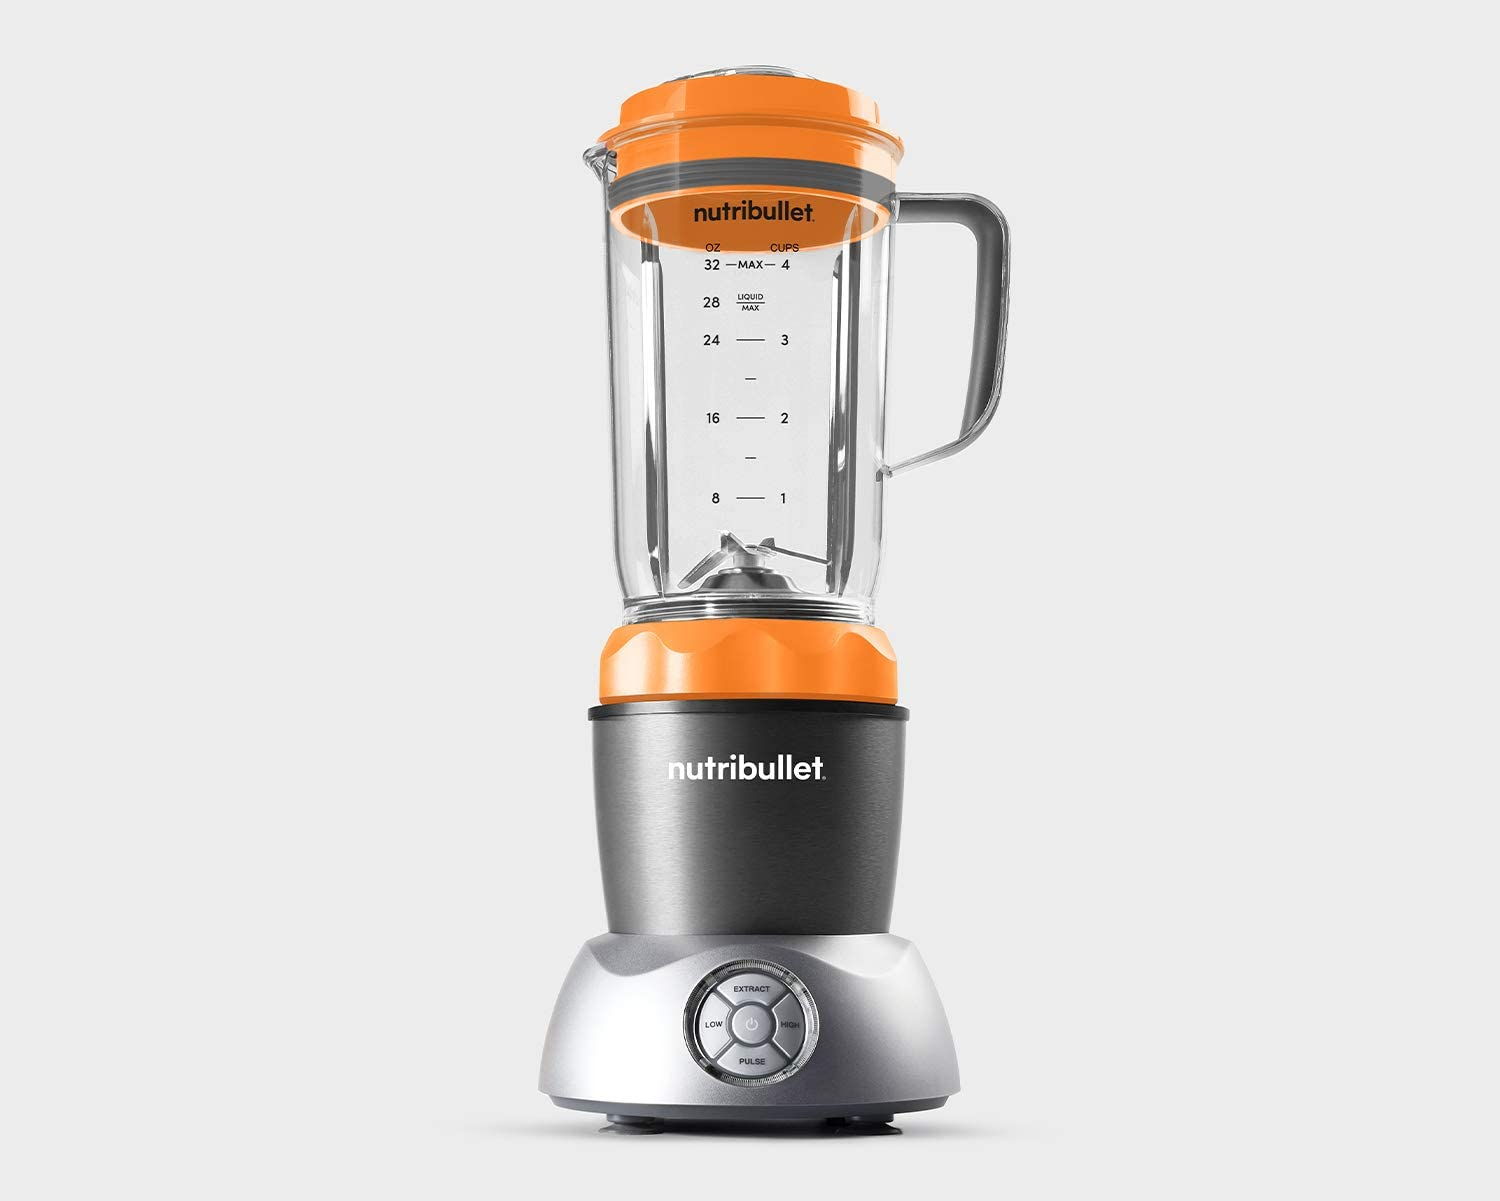 NutriBullet NB50200OR Select 1000 Watt Orange, 32 oz